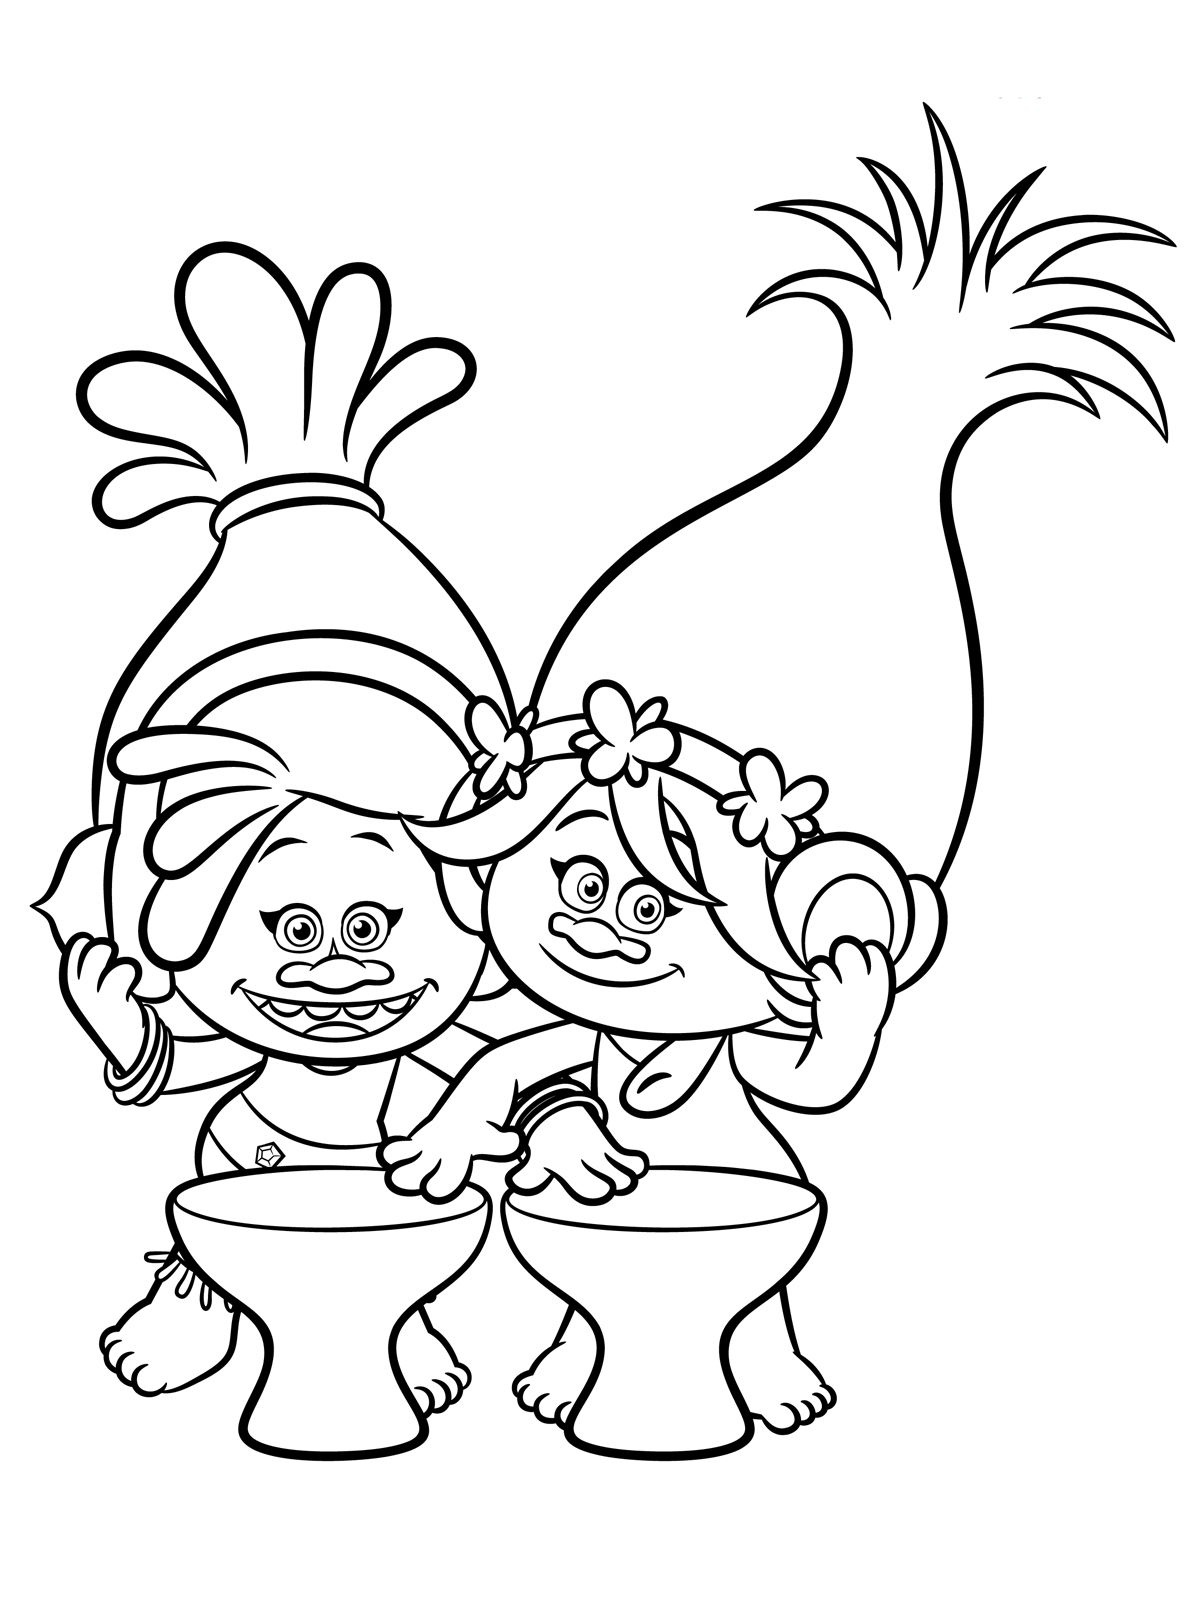 Trolls Coloring Pages To Download And Print For Free | Colouring - Free Printable Troll Coloring Pages